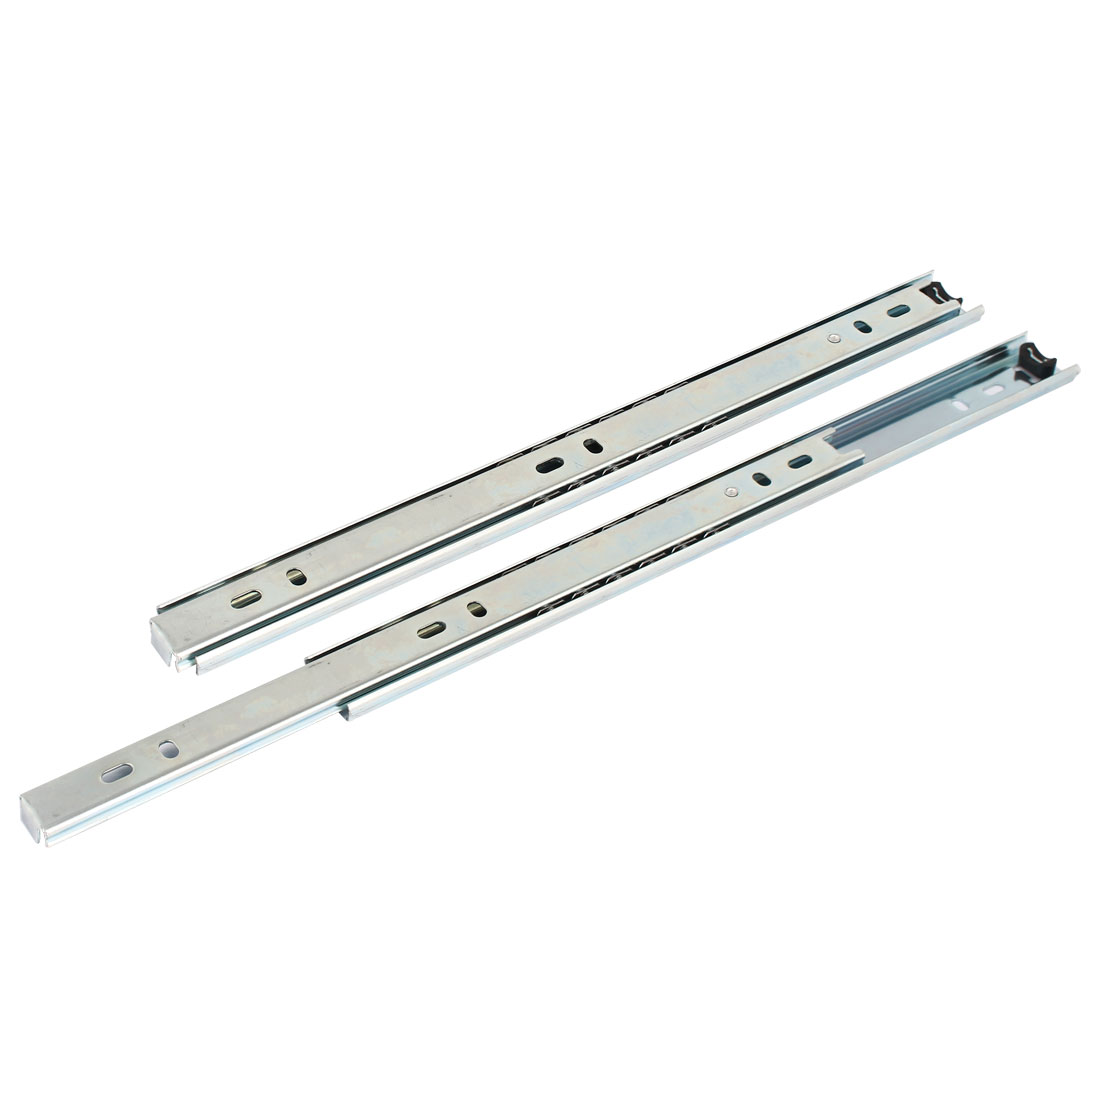 "Ball Bearing 12"" 300mm Length Drawer Slide Track Rail Silver Tone 2Pcs"